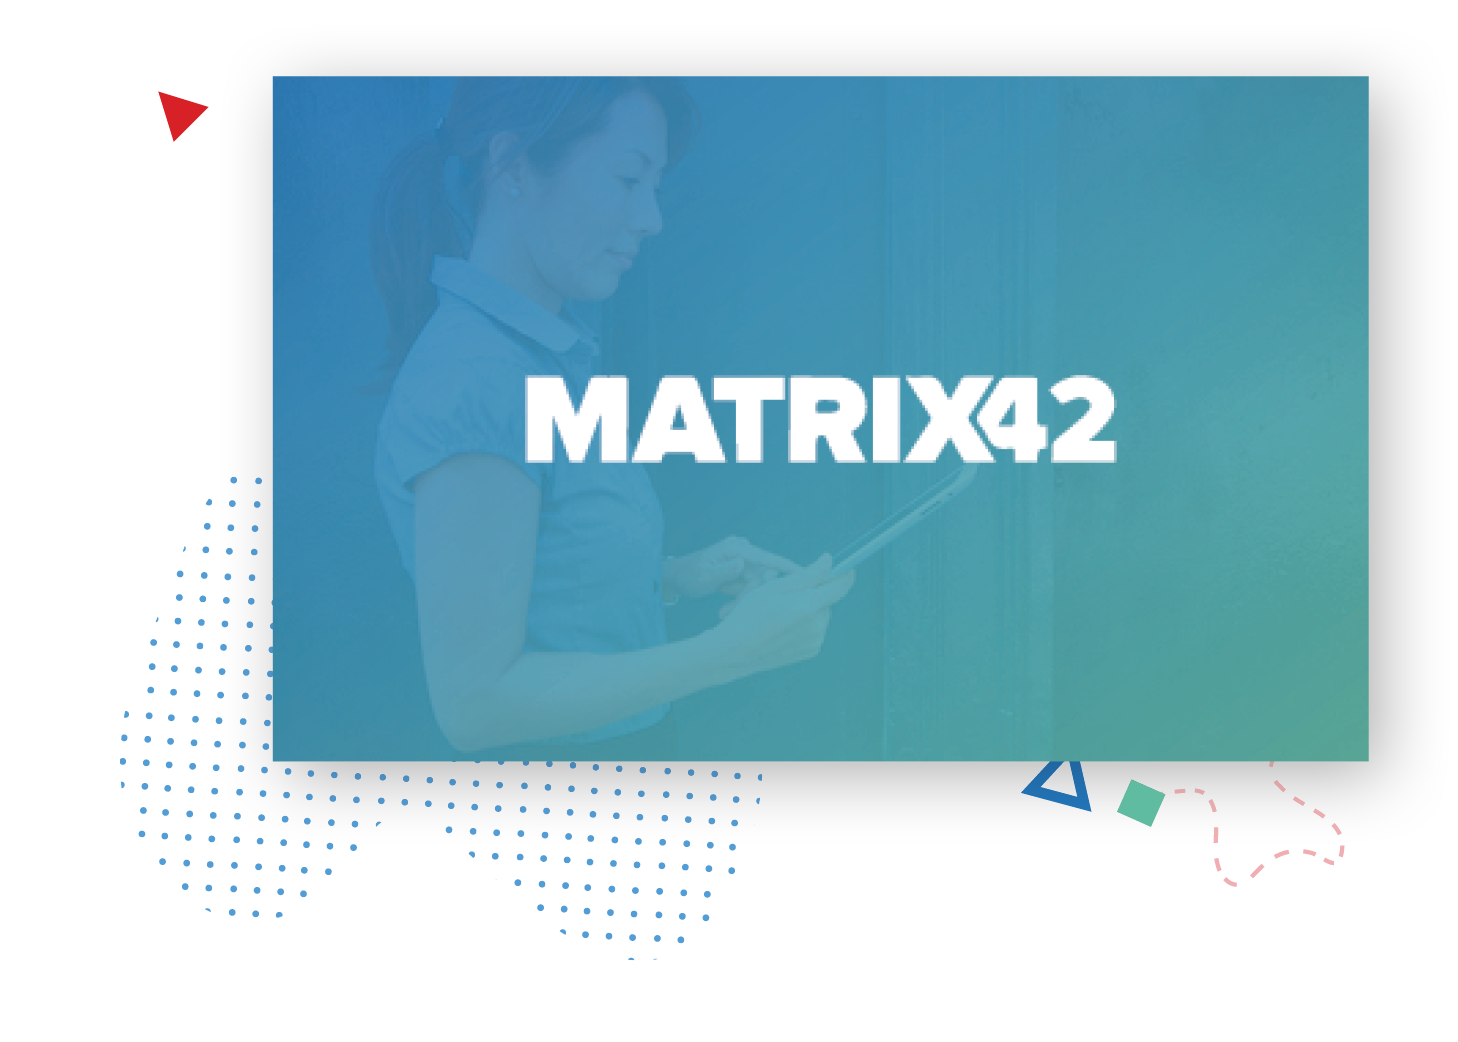 Matrix42 Multiposting Case Study